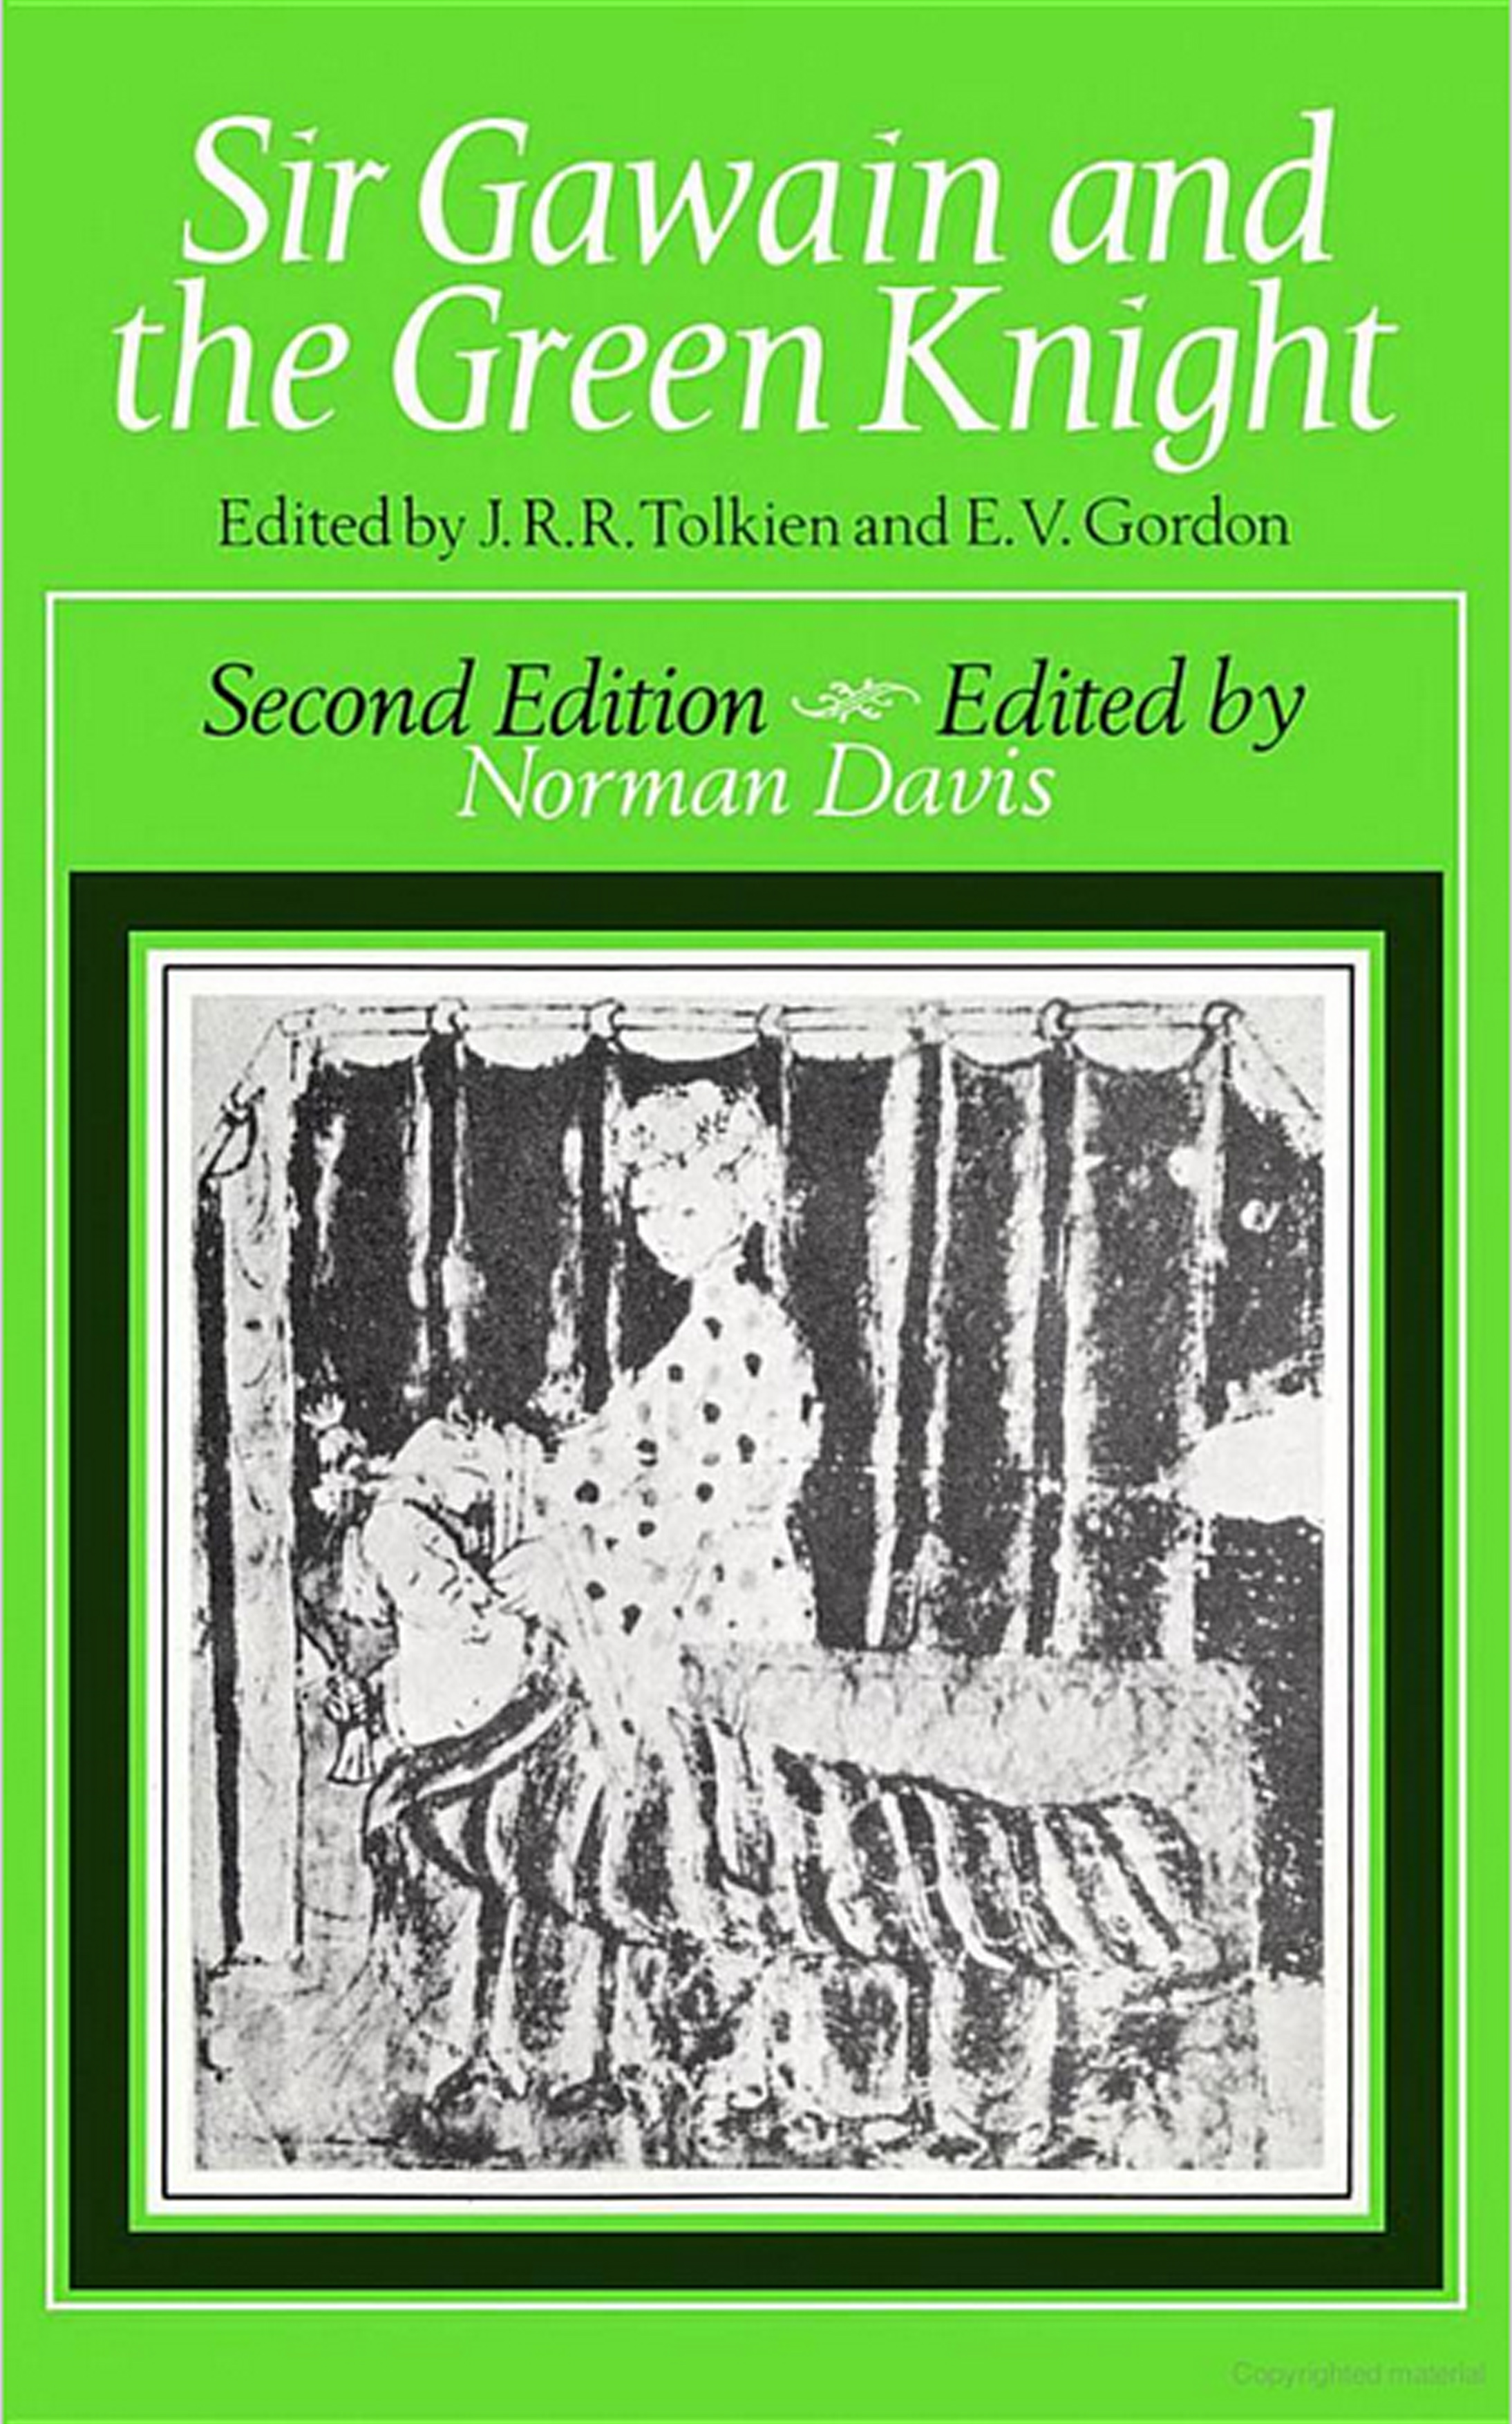 an examination of the epic poem sir gawain and the green knight Sir gawain student sample and teacher sample sir gawain and the green knight is a great medieval epic and romanceour student and teacher guides will increase the student's vocabulary and reading comprehension.